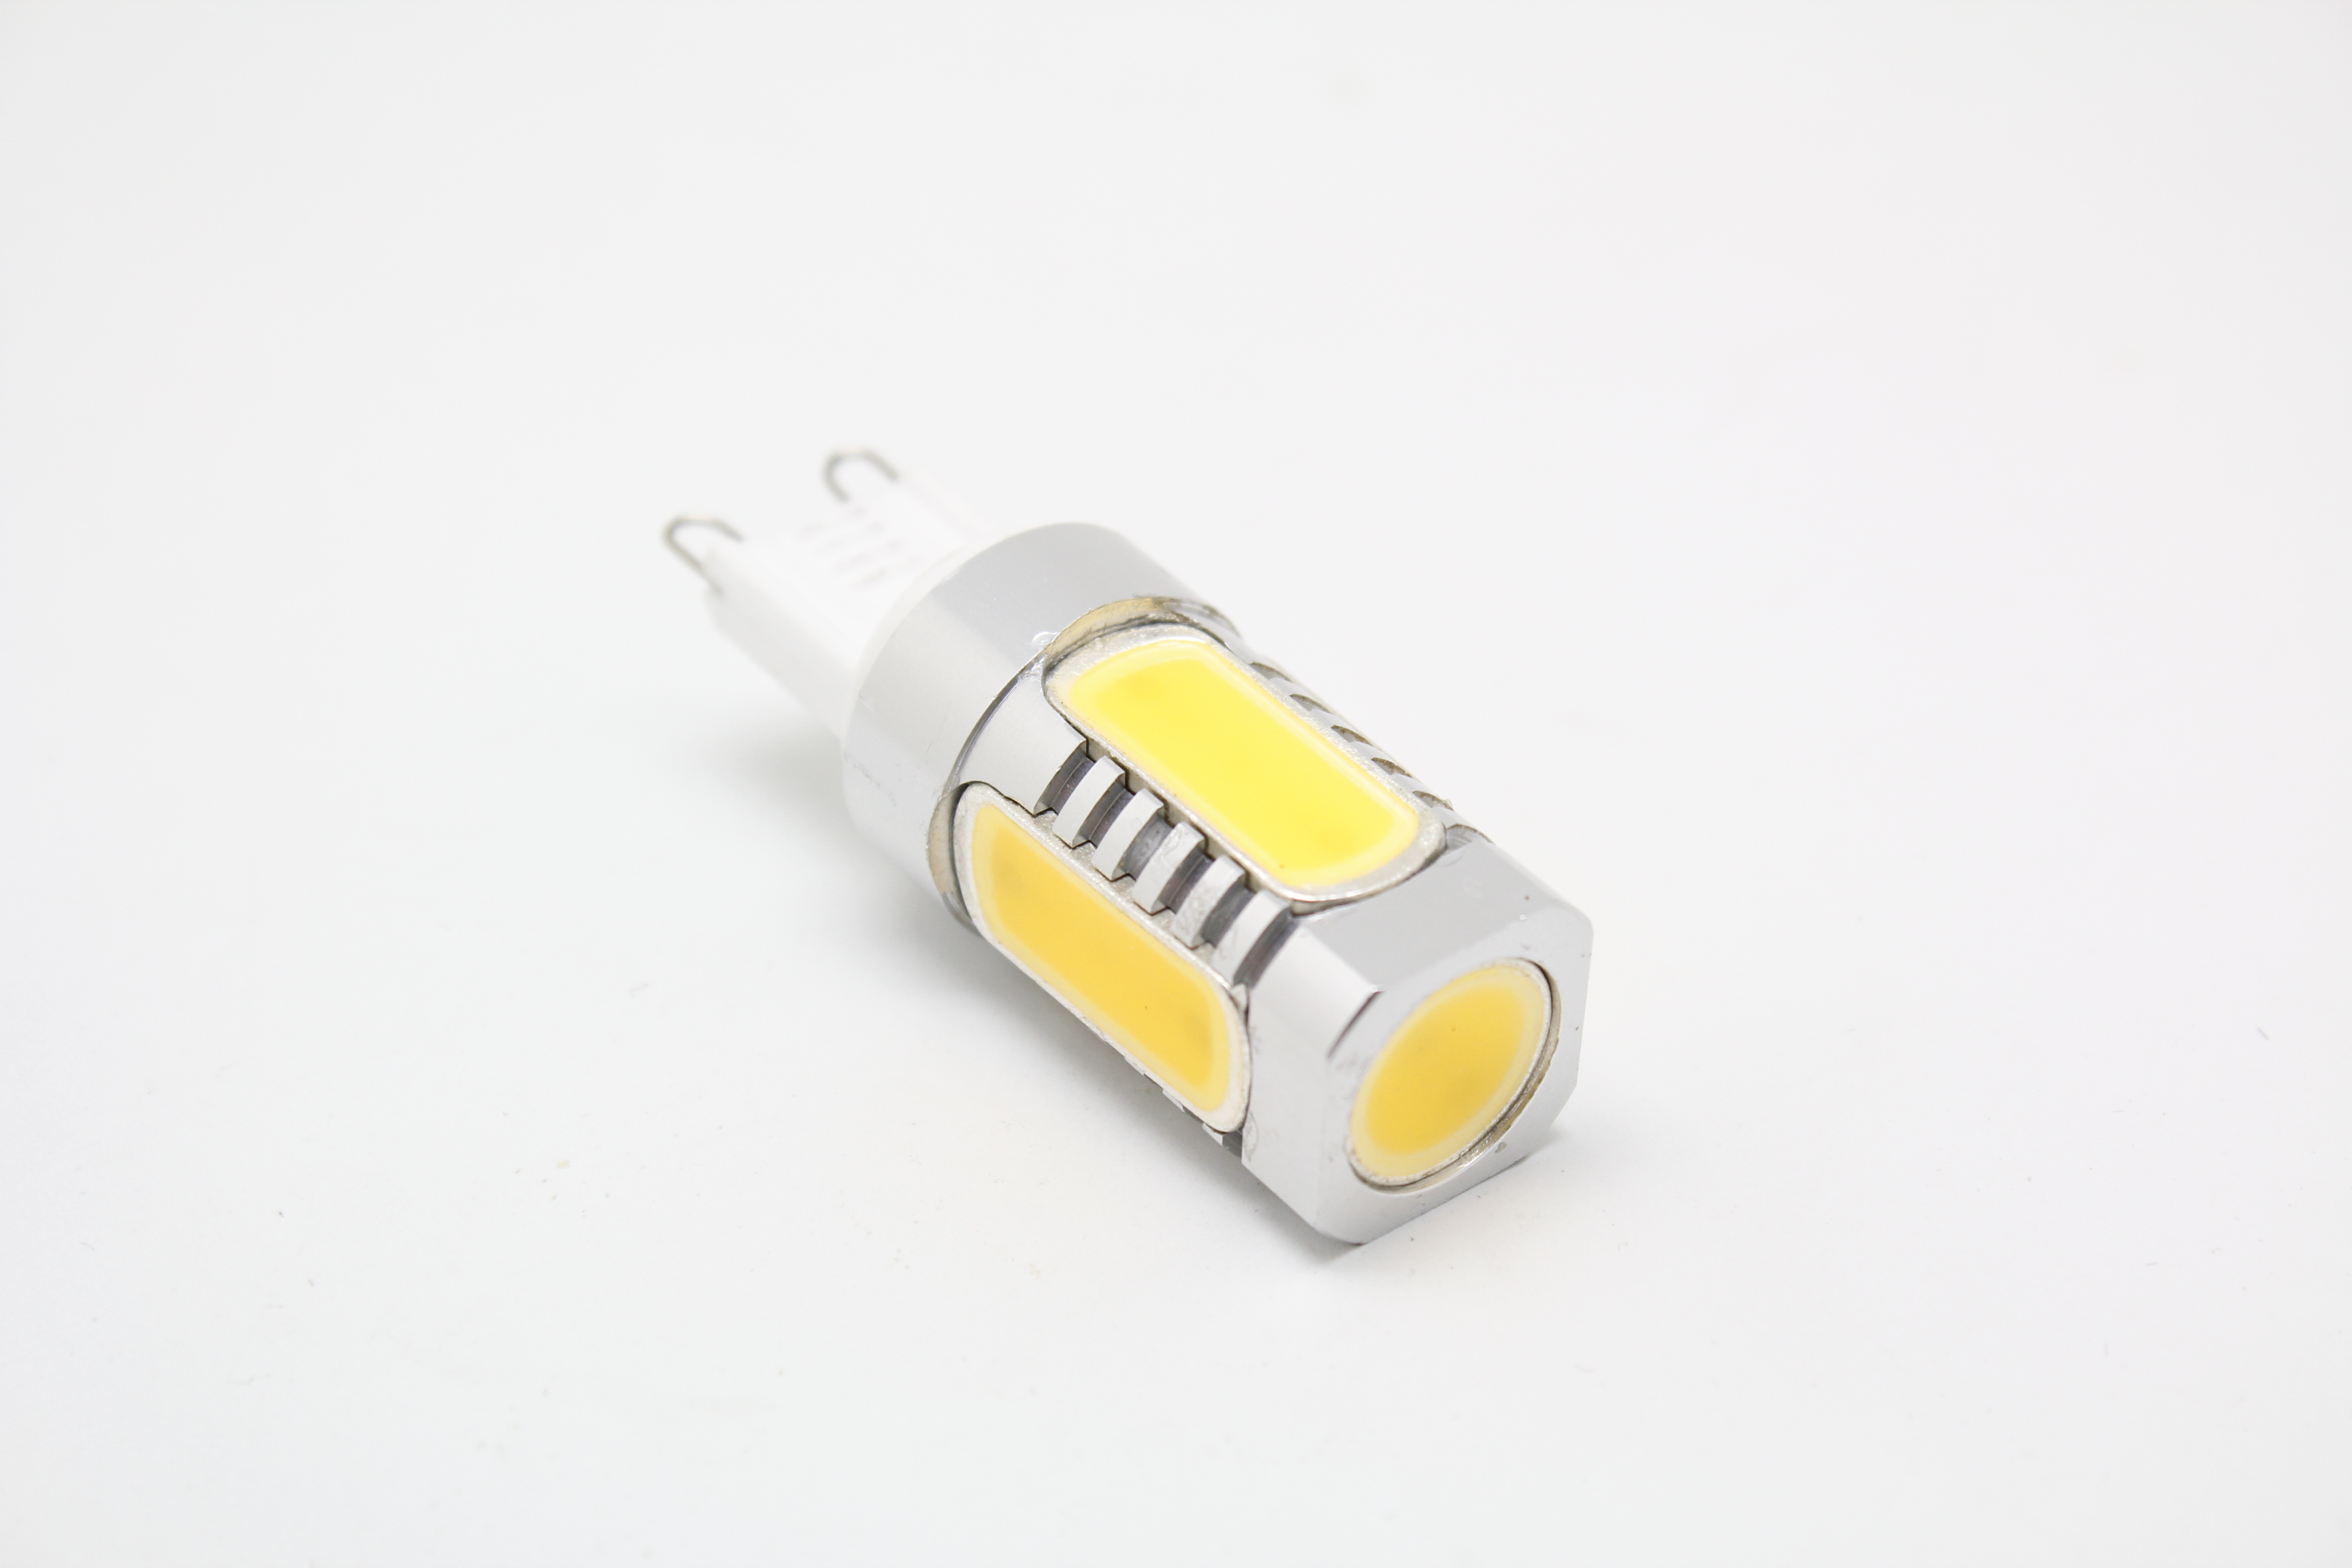 7 5w cob led g9 high output 350 lumens 28w halogen g9 replacement warm white ebay. Black Bedroom Furniture Sets. Home Design Ideas